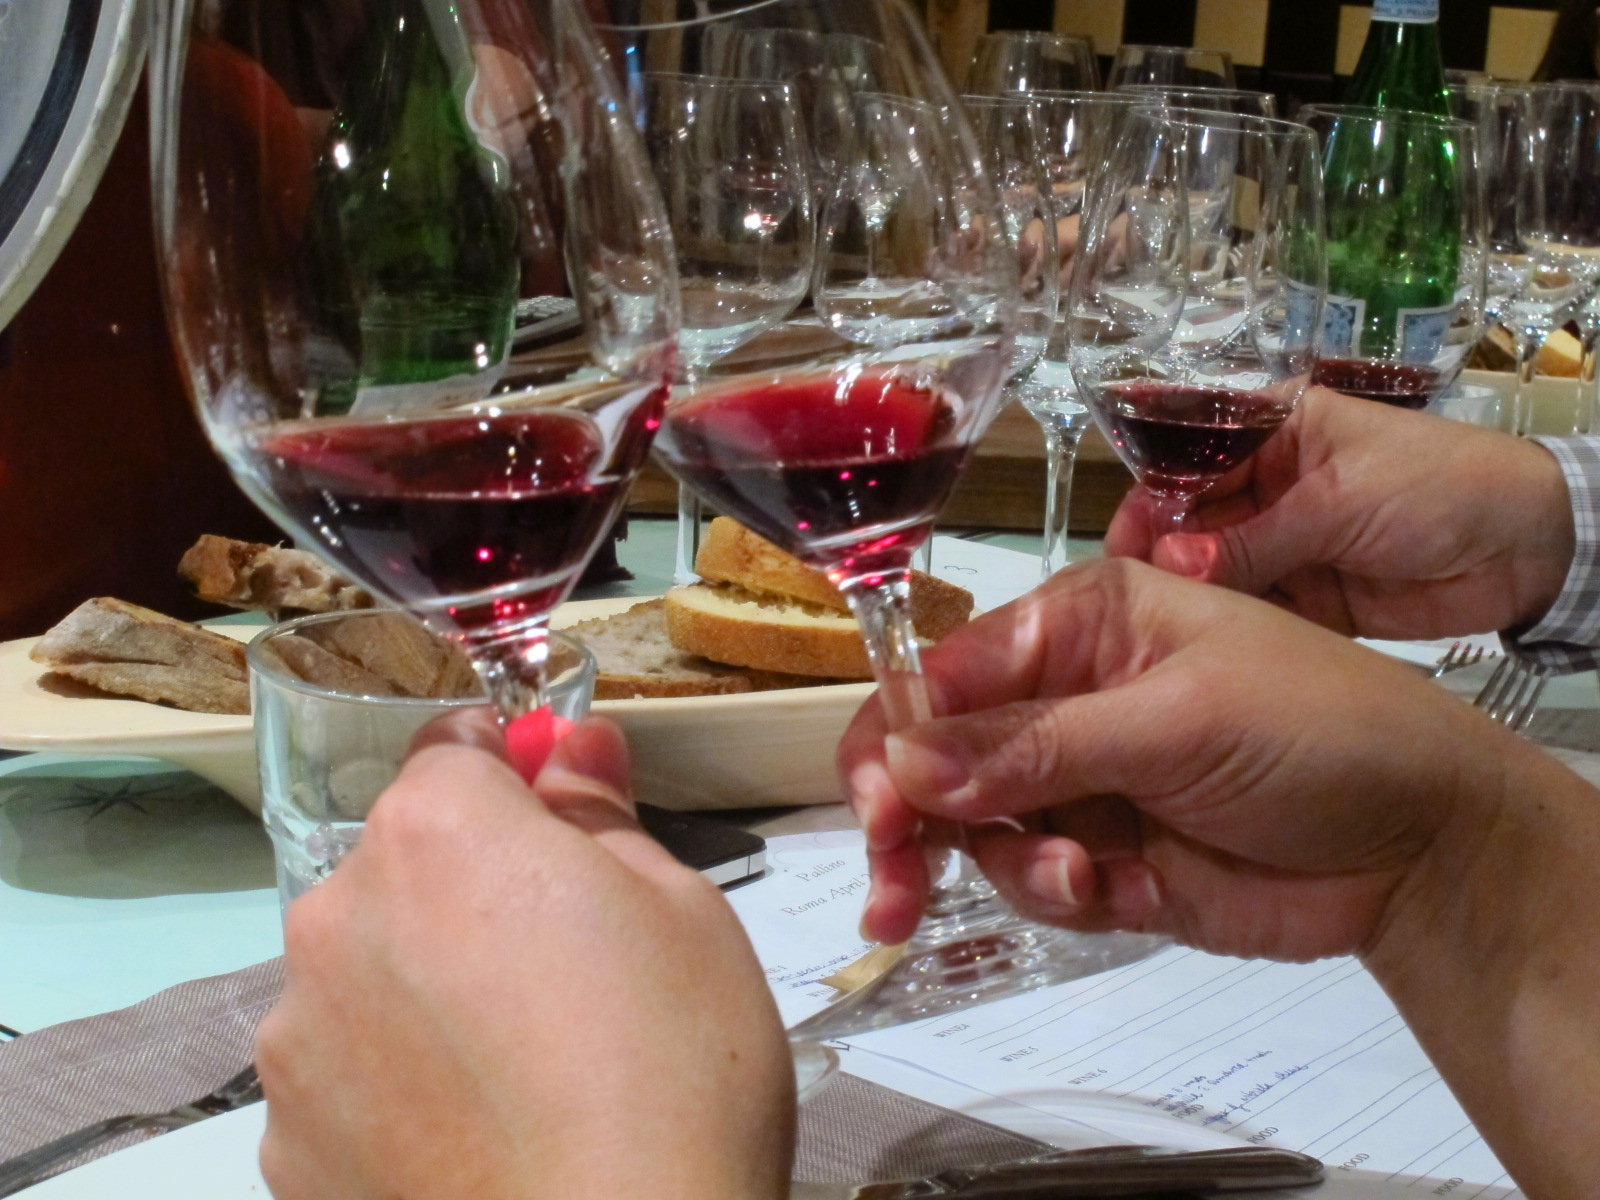 Wine and finland wine tastings in helsinki you wanna be a part of it if you live in finland and if you are interested in wine in a serious way if you read about it write and eager to do more regularly solutioingenieria Images